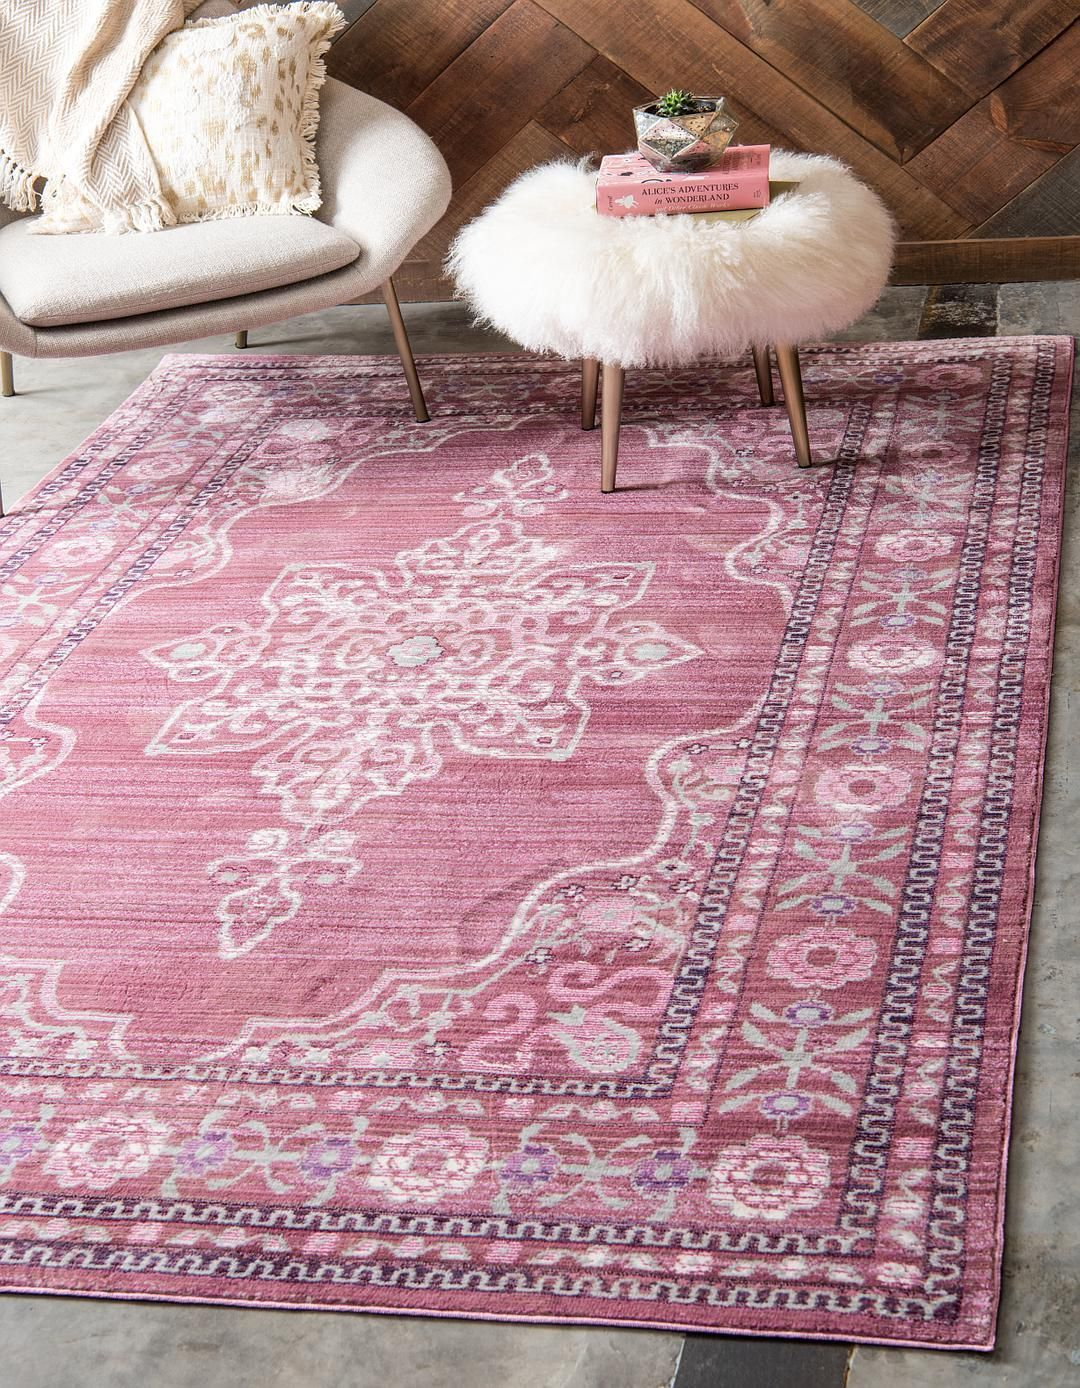 Pink 5' x 8' Aqua Rug Area Rugs iRugs UK (With images